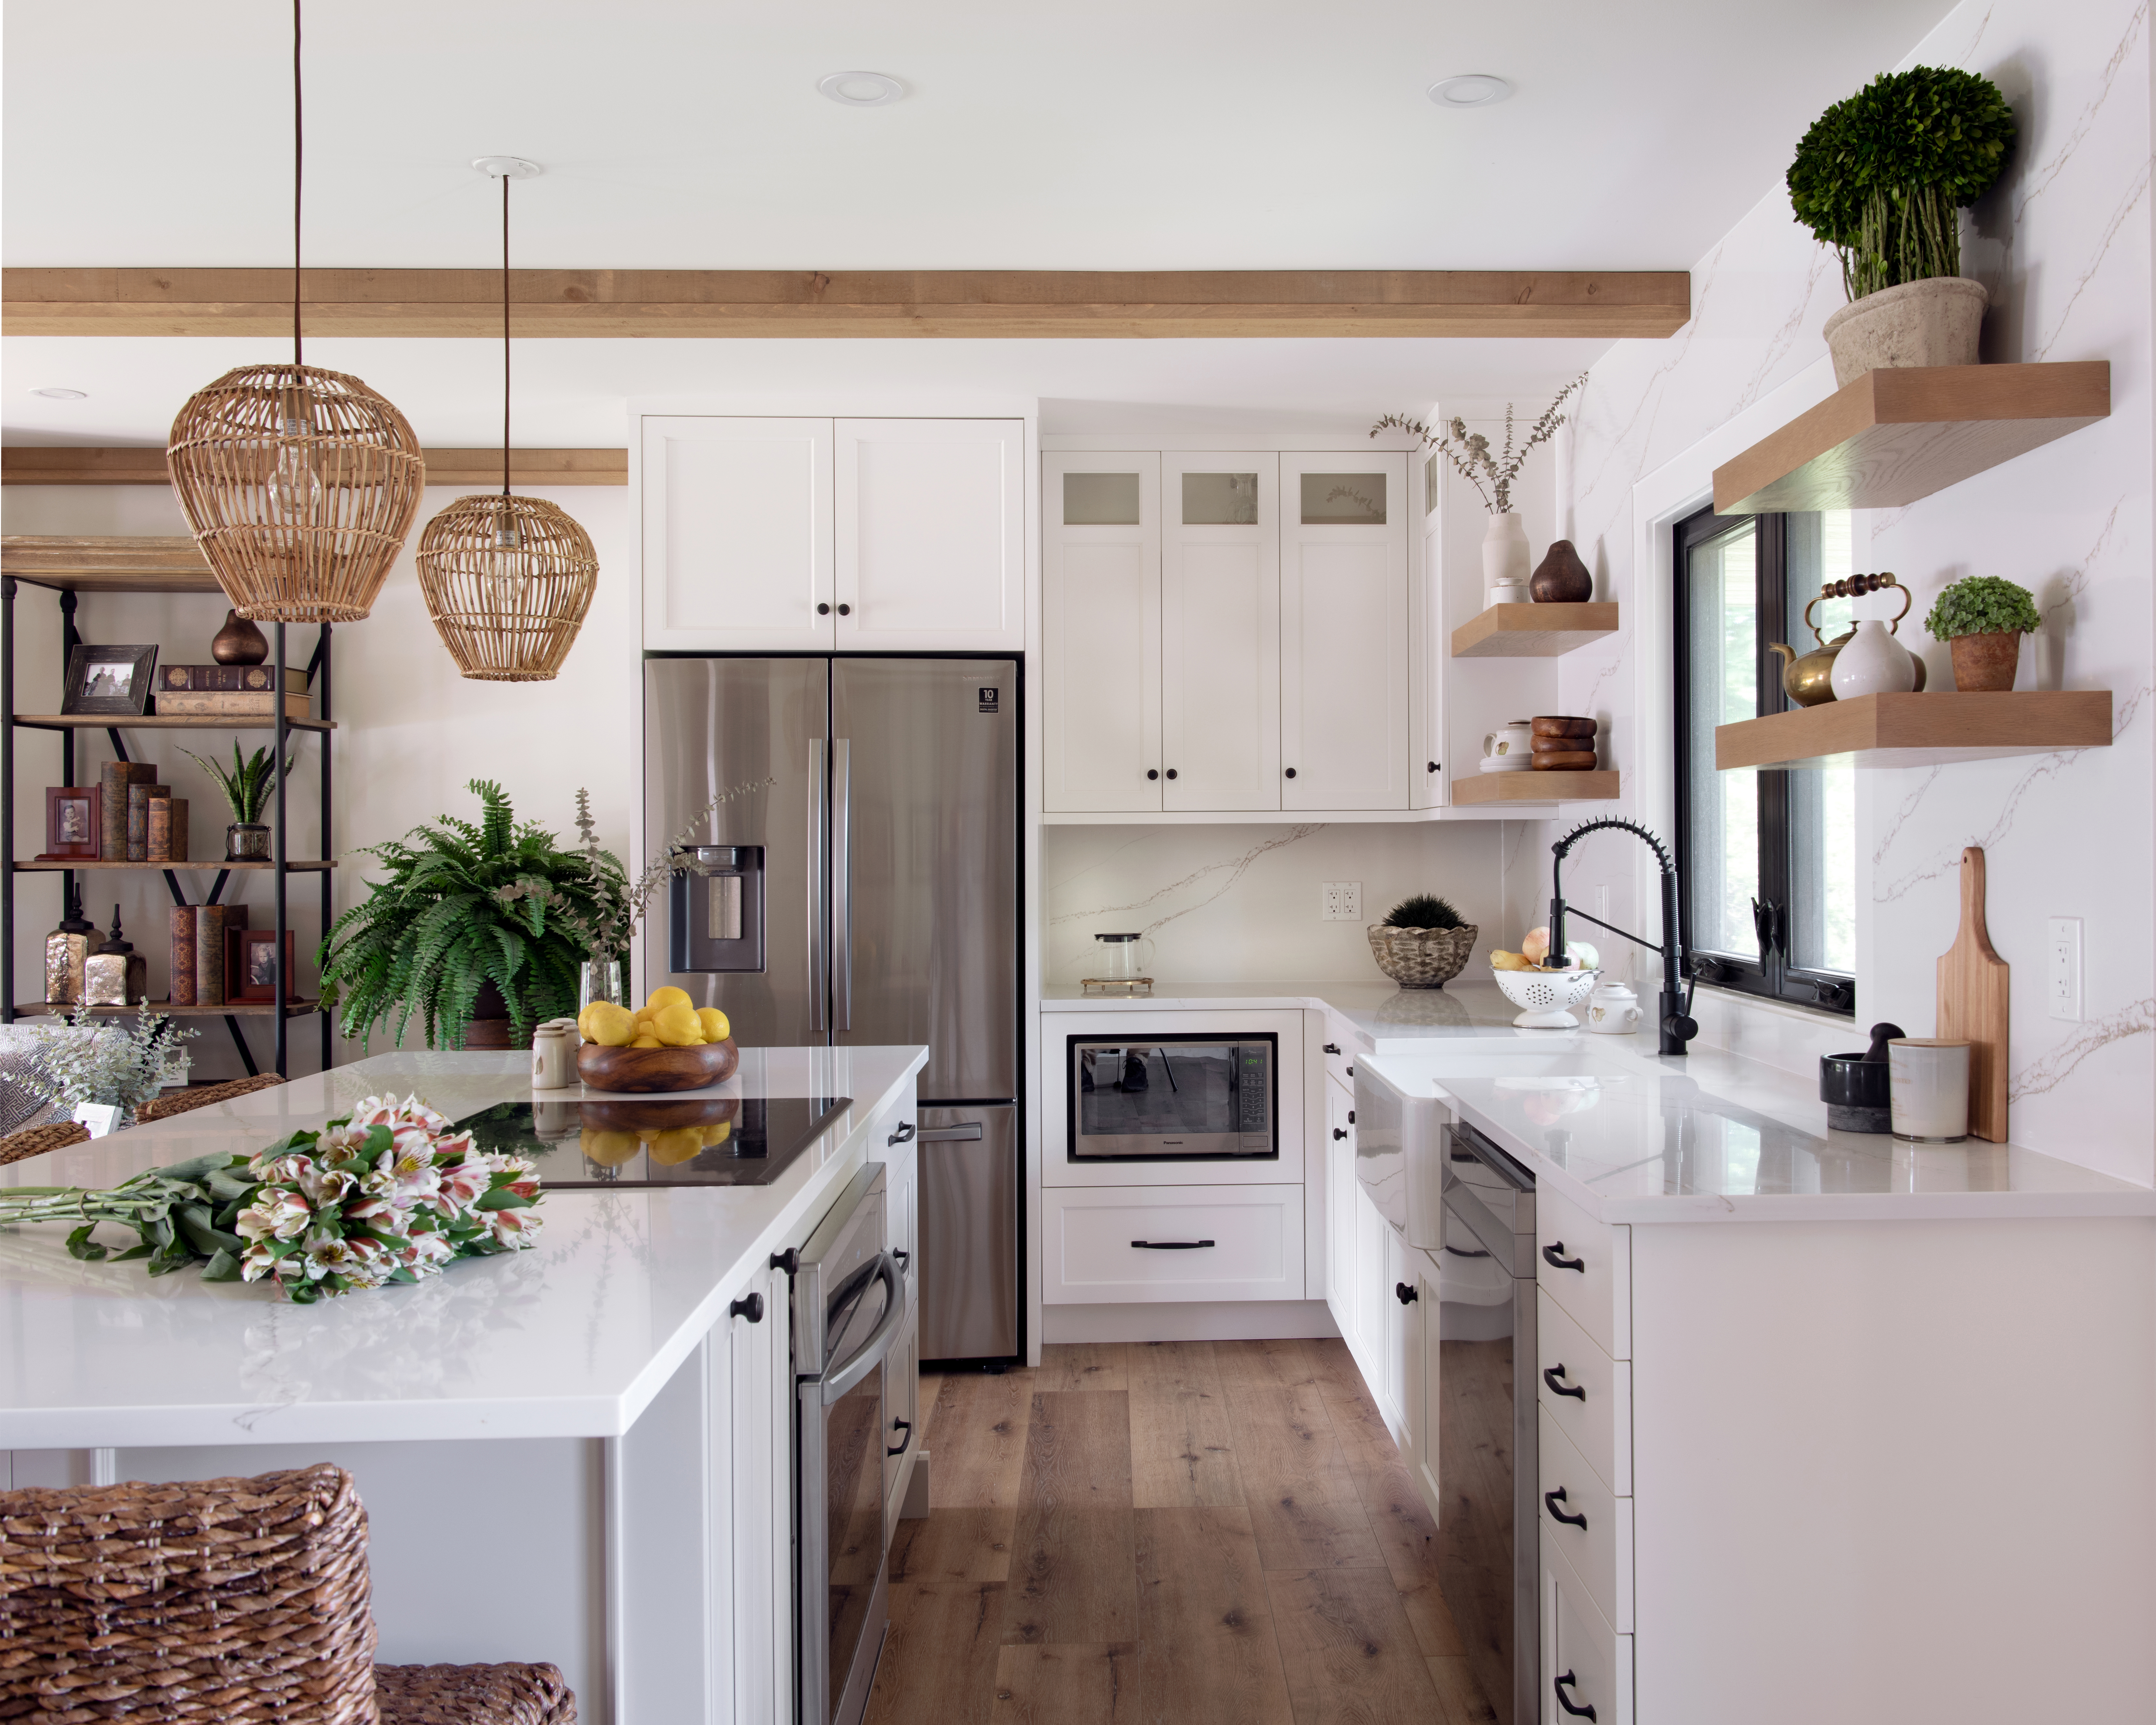 A custom kitchen with painted cabinetry